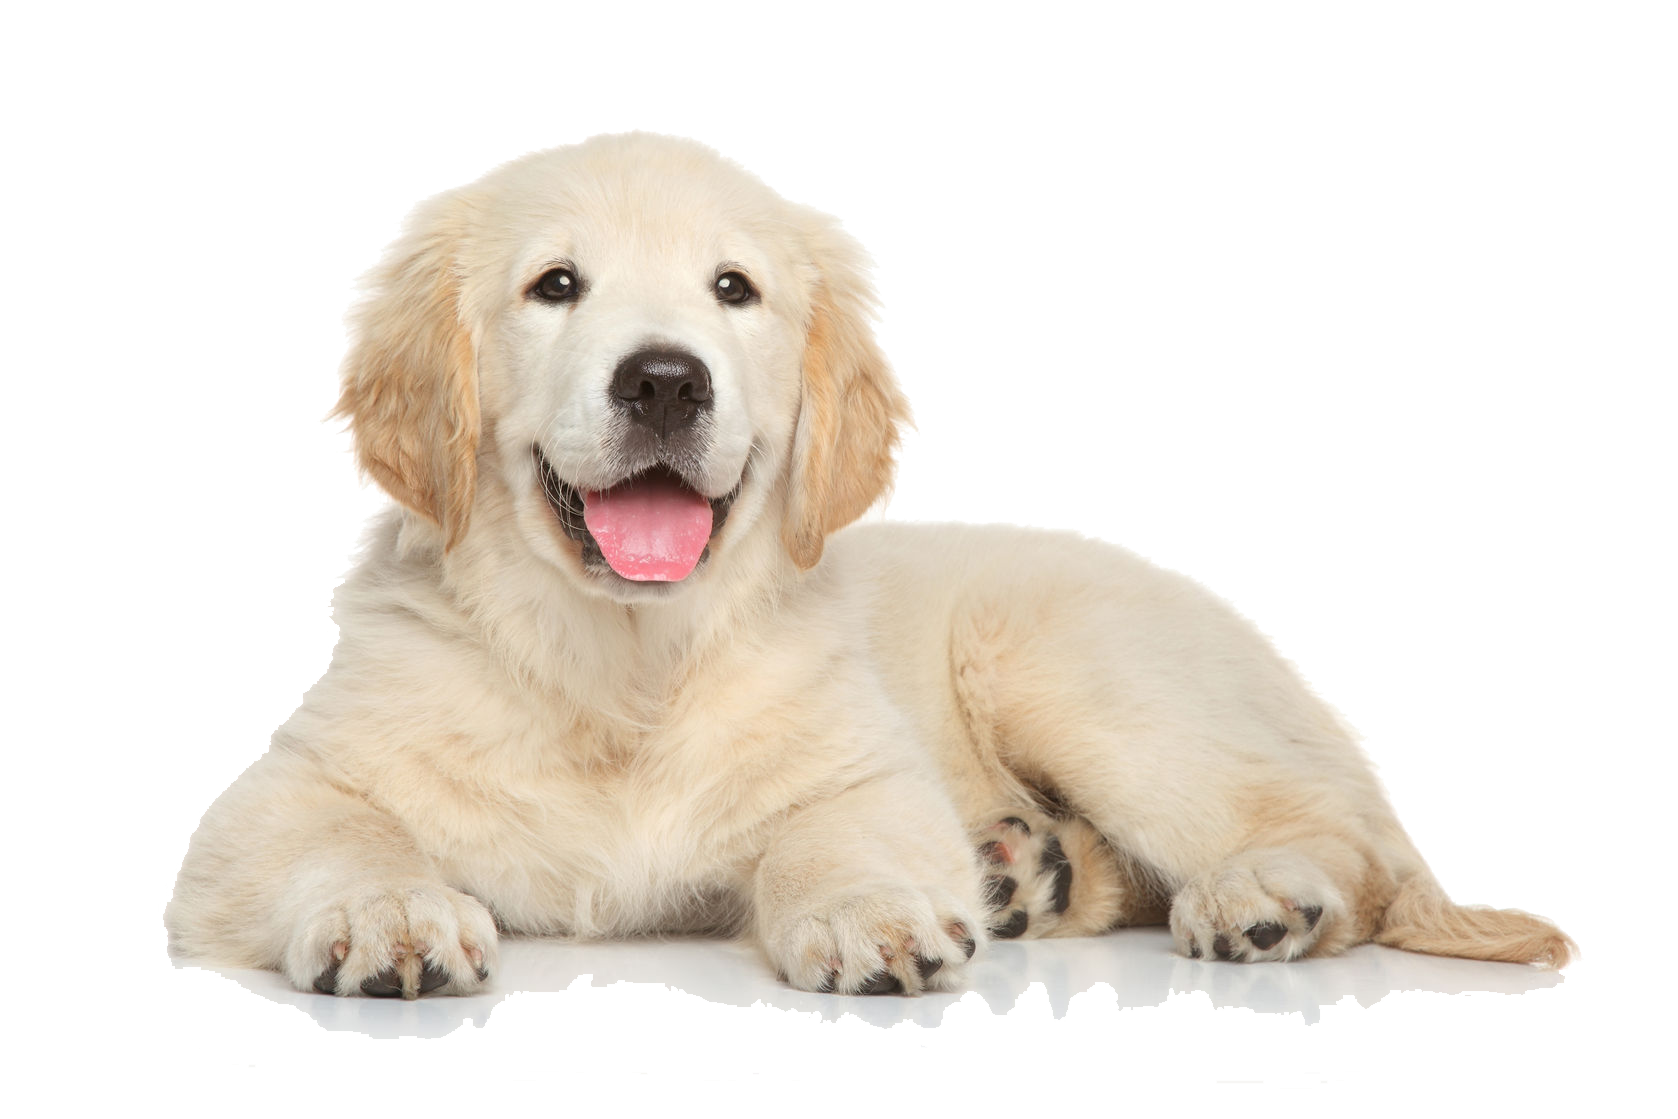 Puppy PNG Images Transparent Free Download.